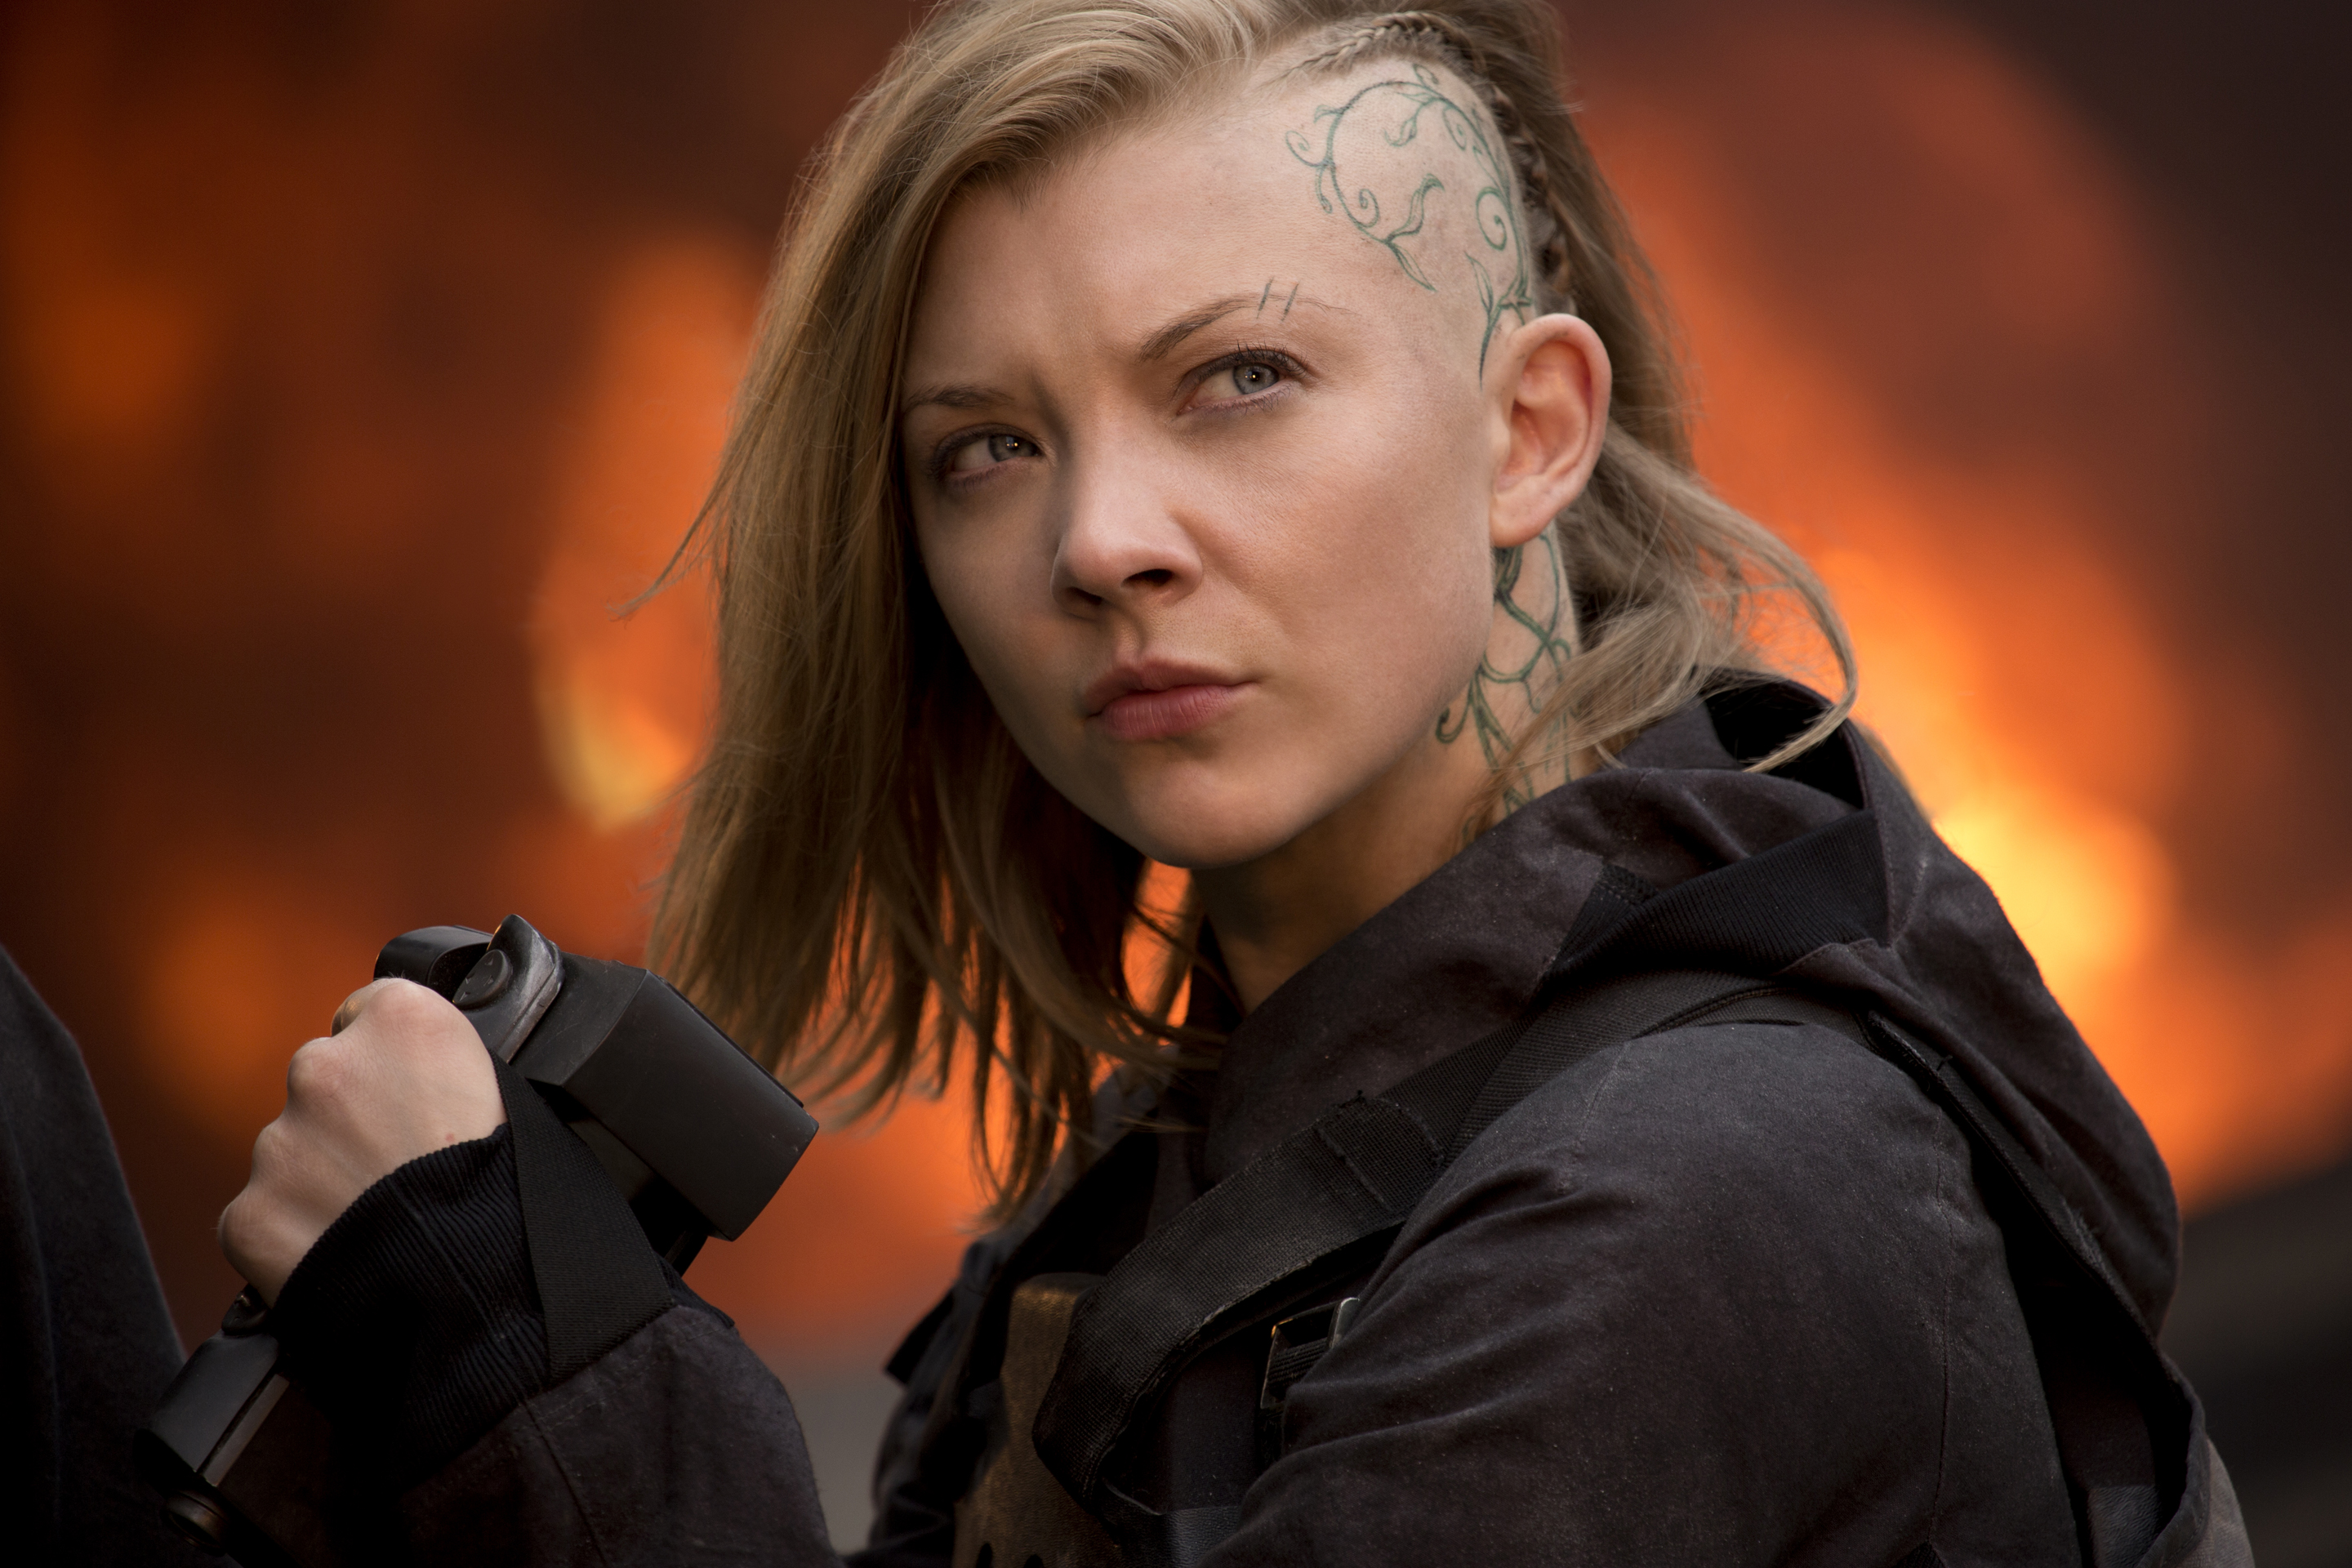 Natalie Dormer On Hunger Games Cressida Female Empowerment The